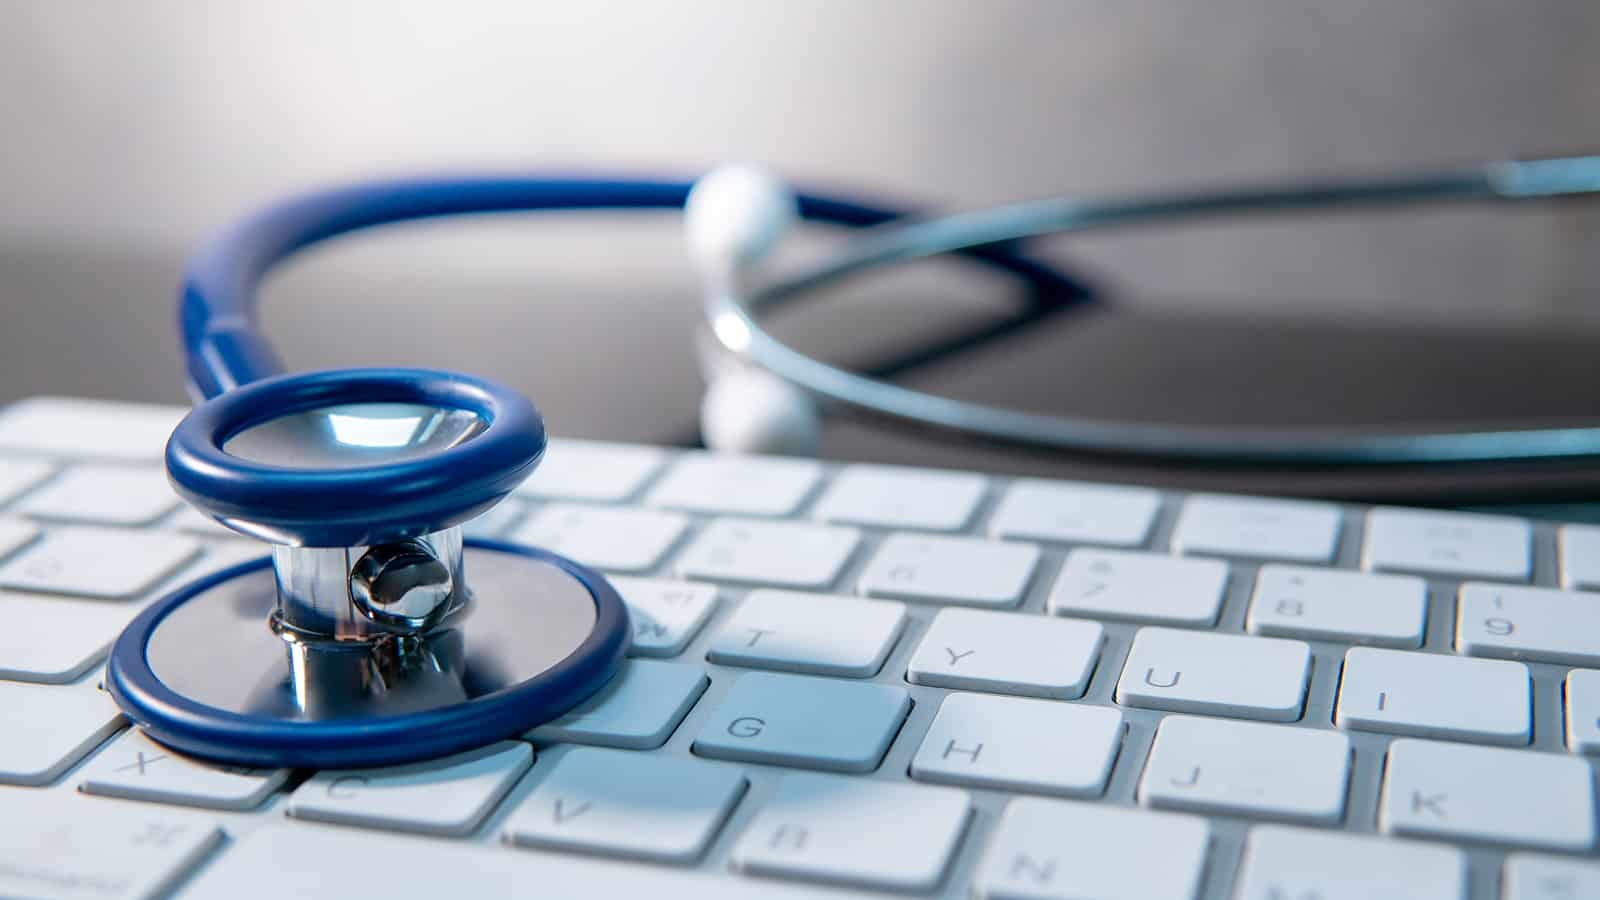 Over 75% of the healthcare industry has been infected by malware last year